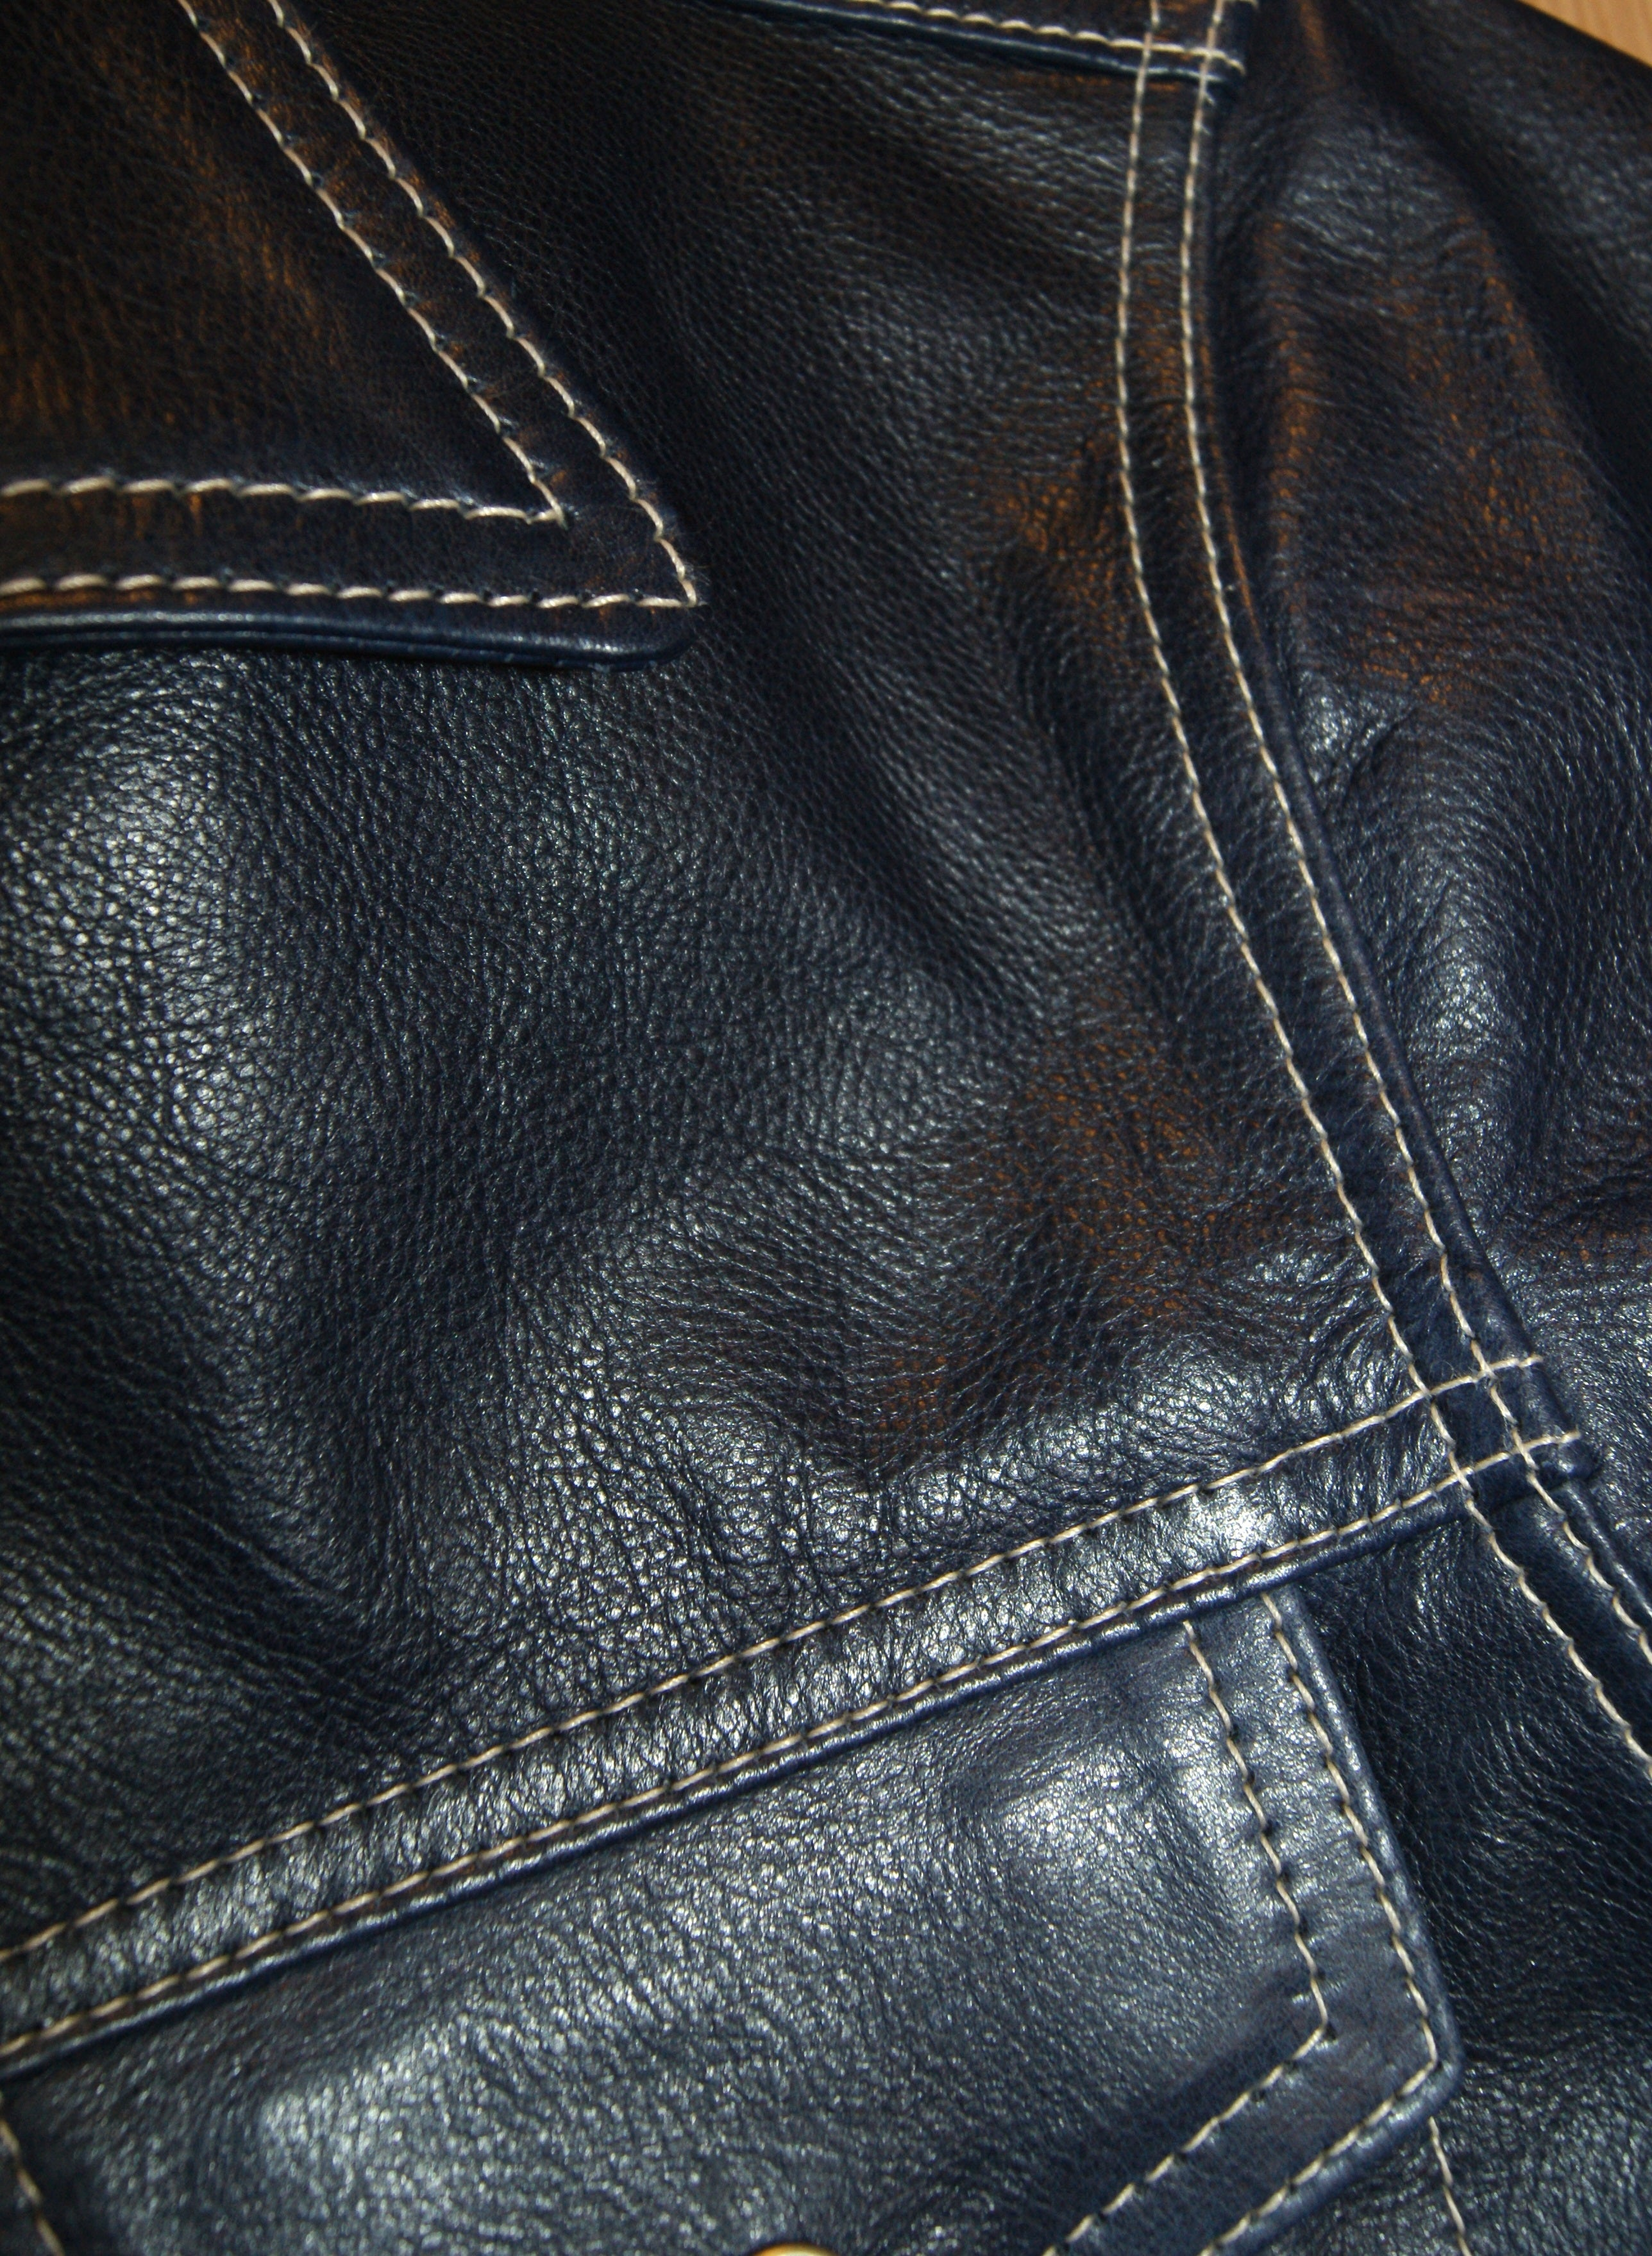 Aero Type 3 Jean Jacket, size 40, Blue Vicenza Horsehide